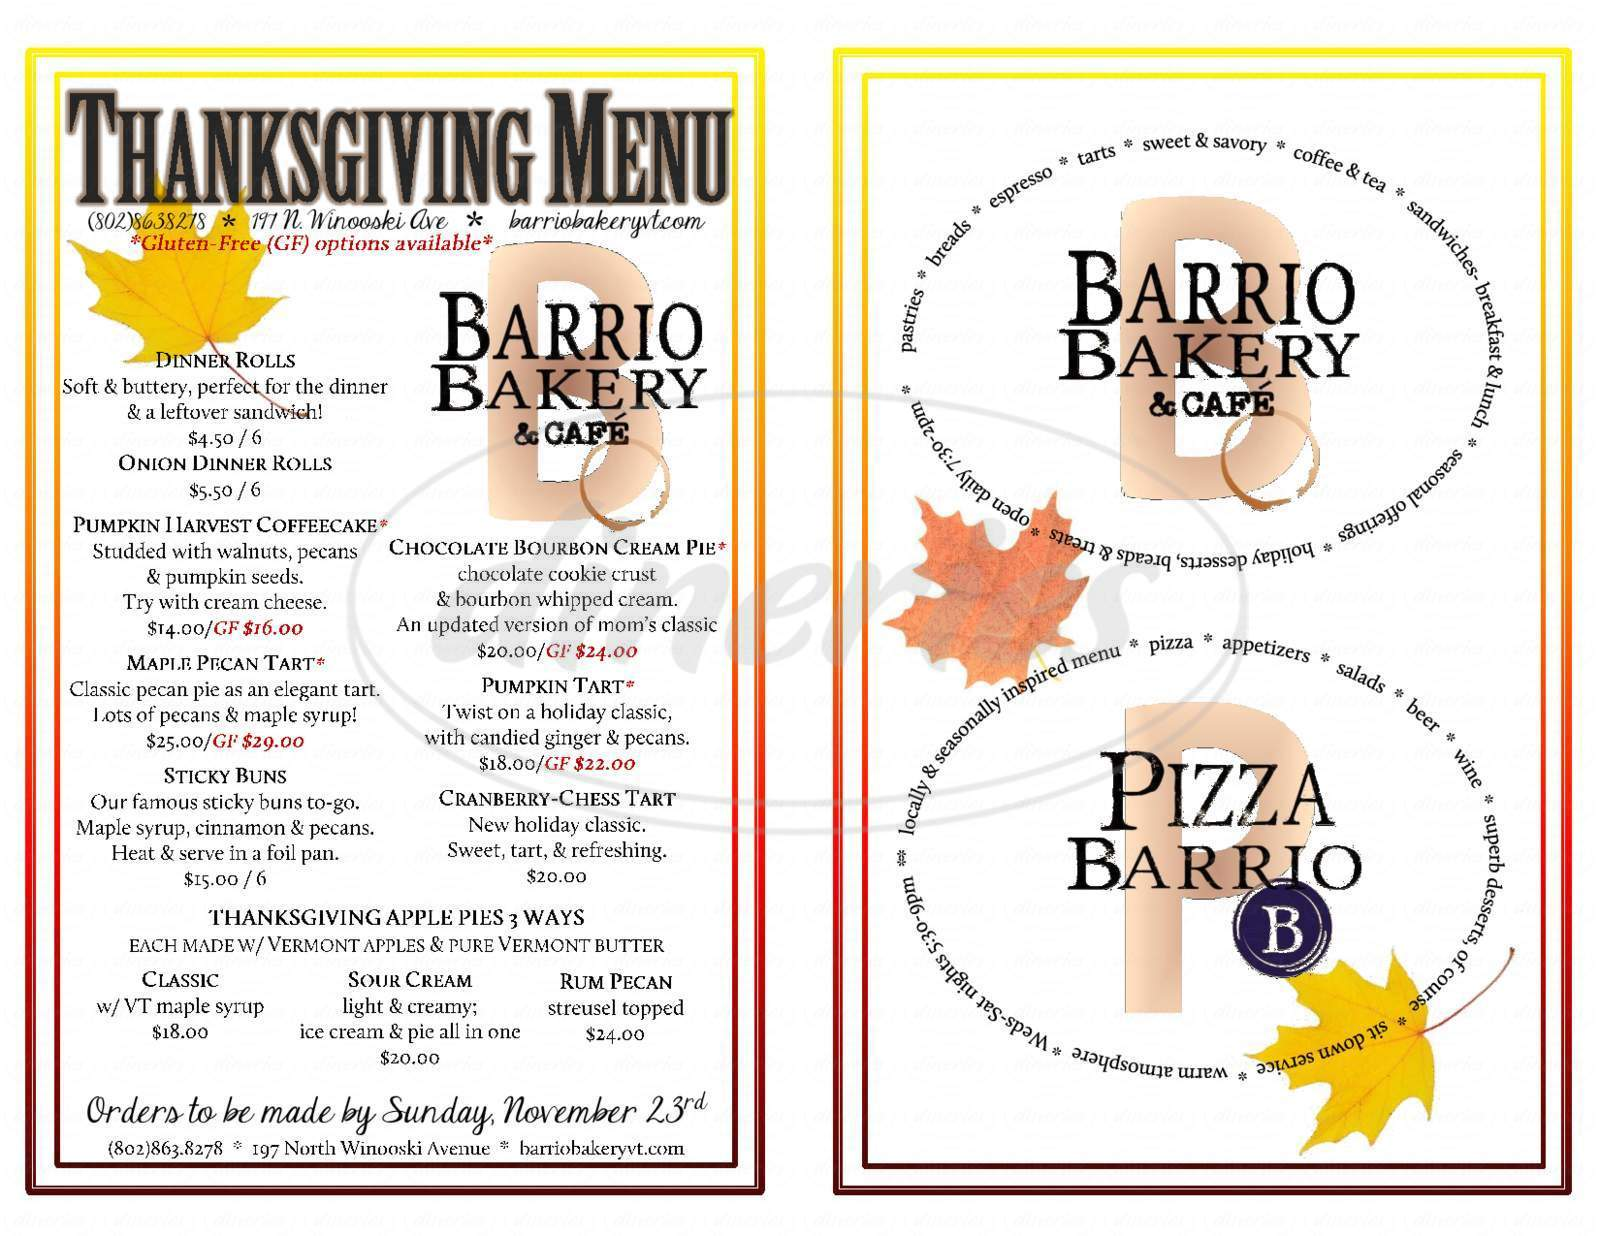 menu for Barrio Bakery & Cafe